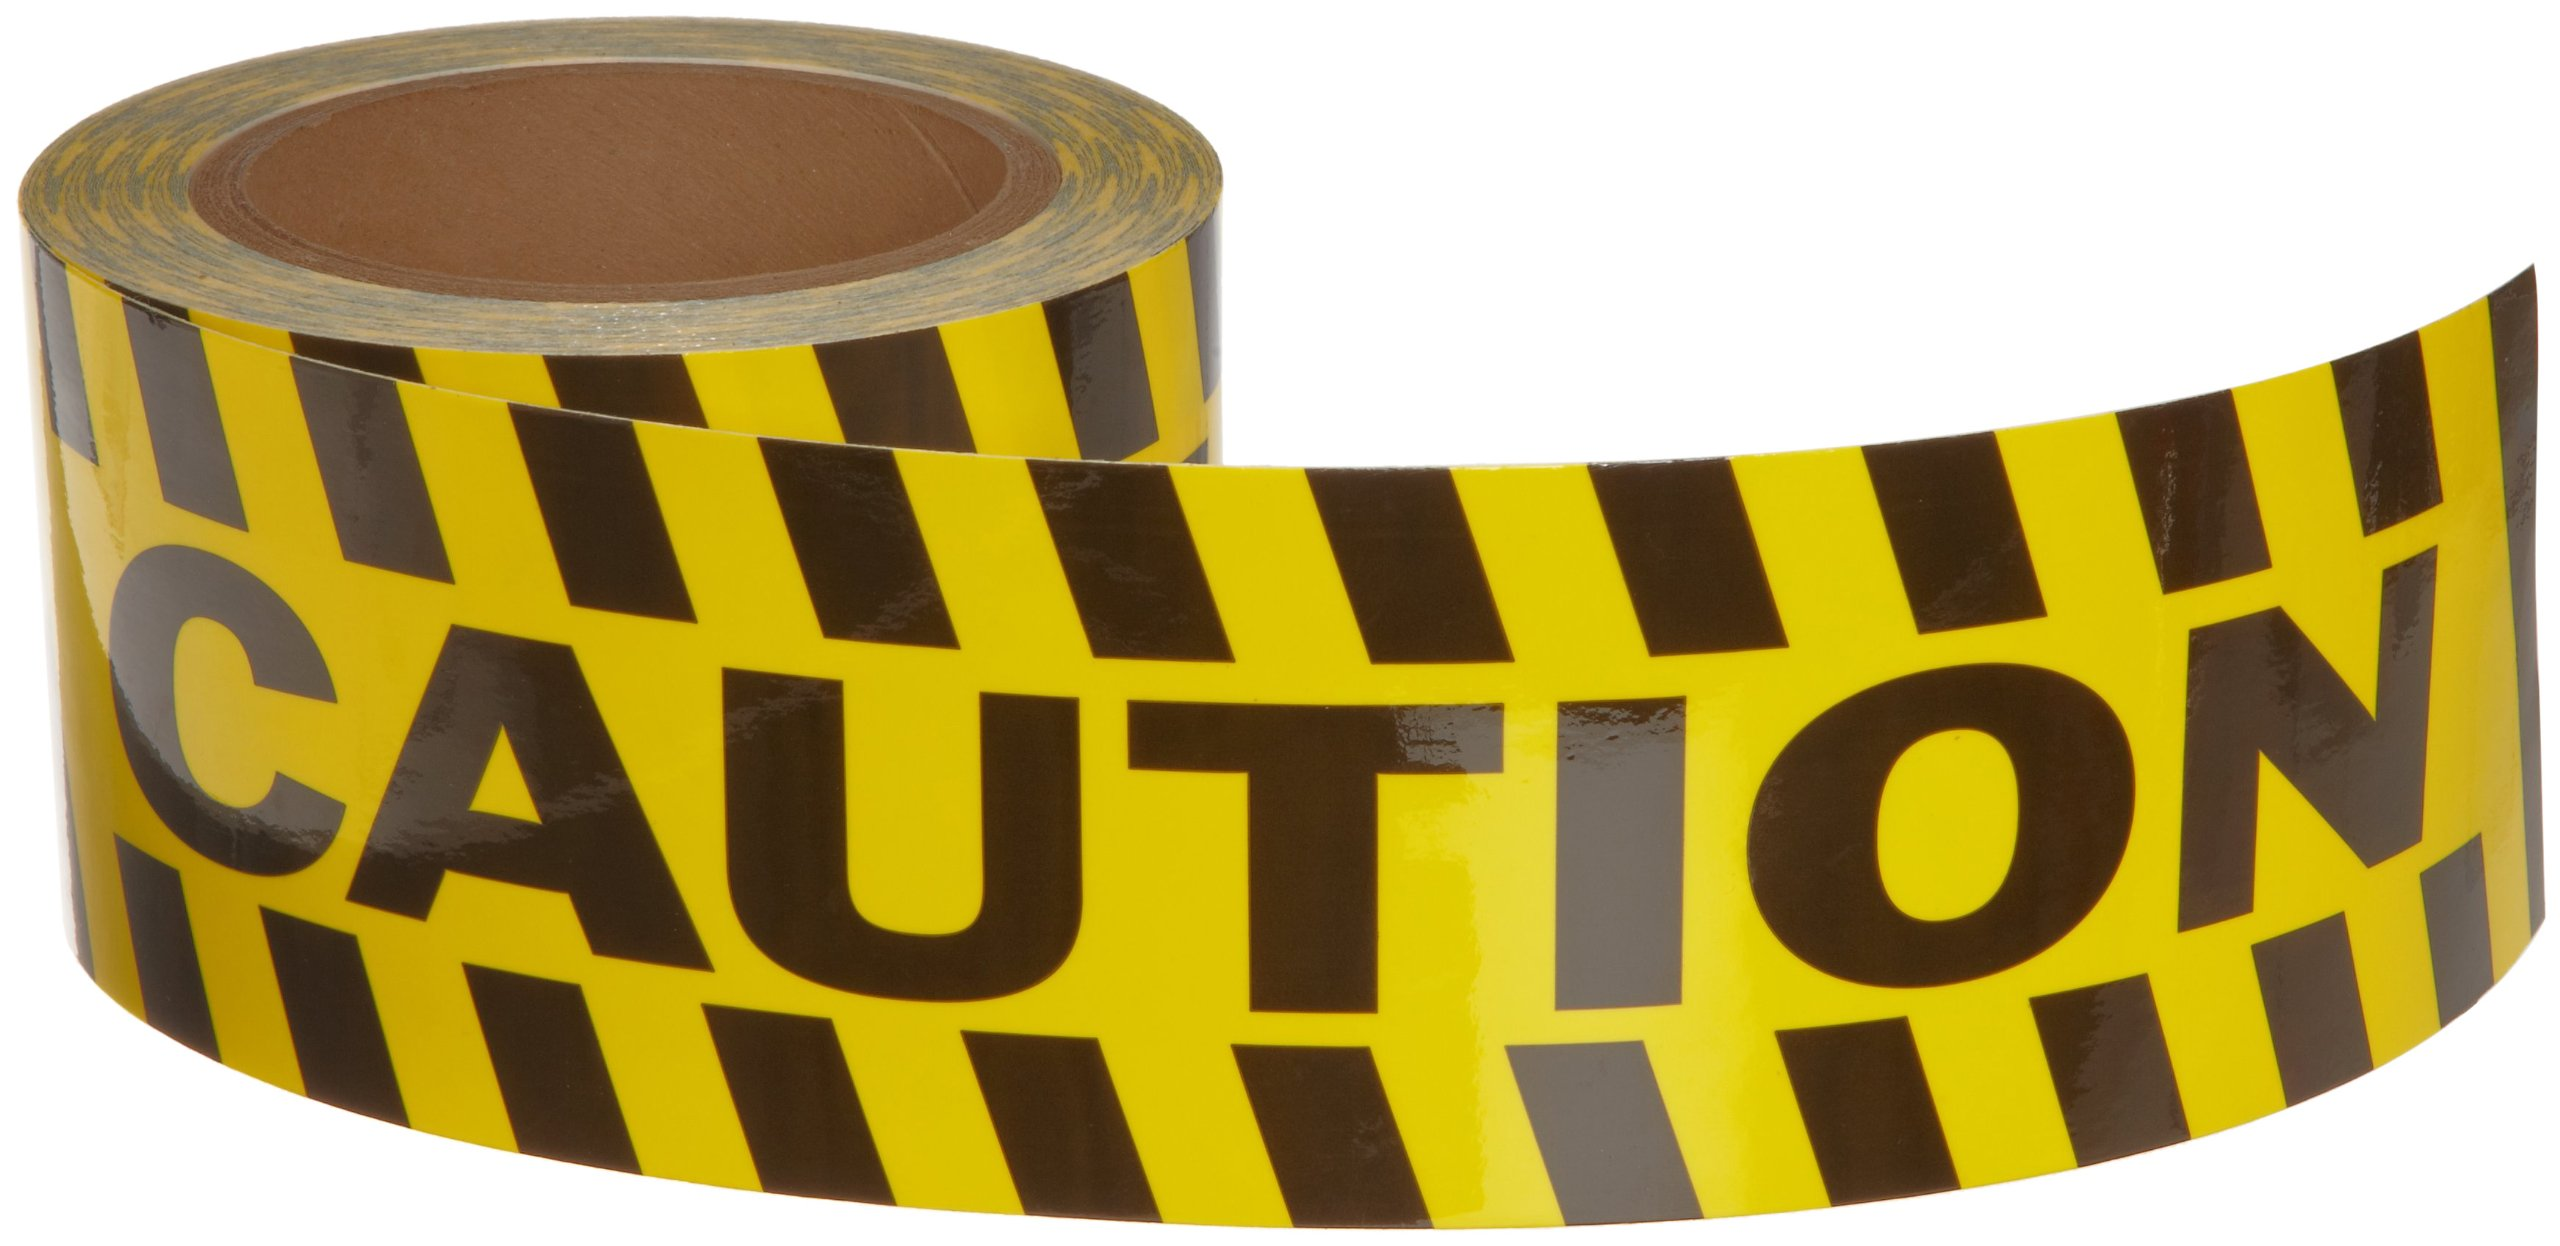 Brady 60' Length, 3'' Width, B-950 Vinyl, Black And Yellow Color Striped Aisle Marking Tape, Legend ''Caution (With Black And Yellow Diagonal Stripes)''